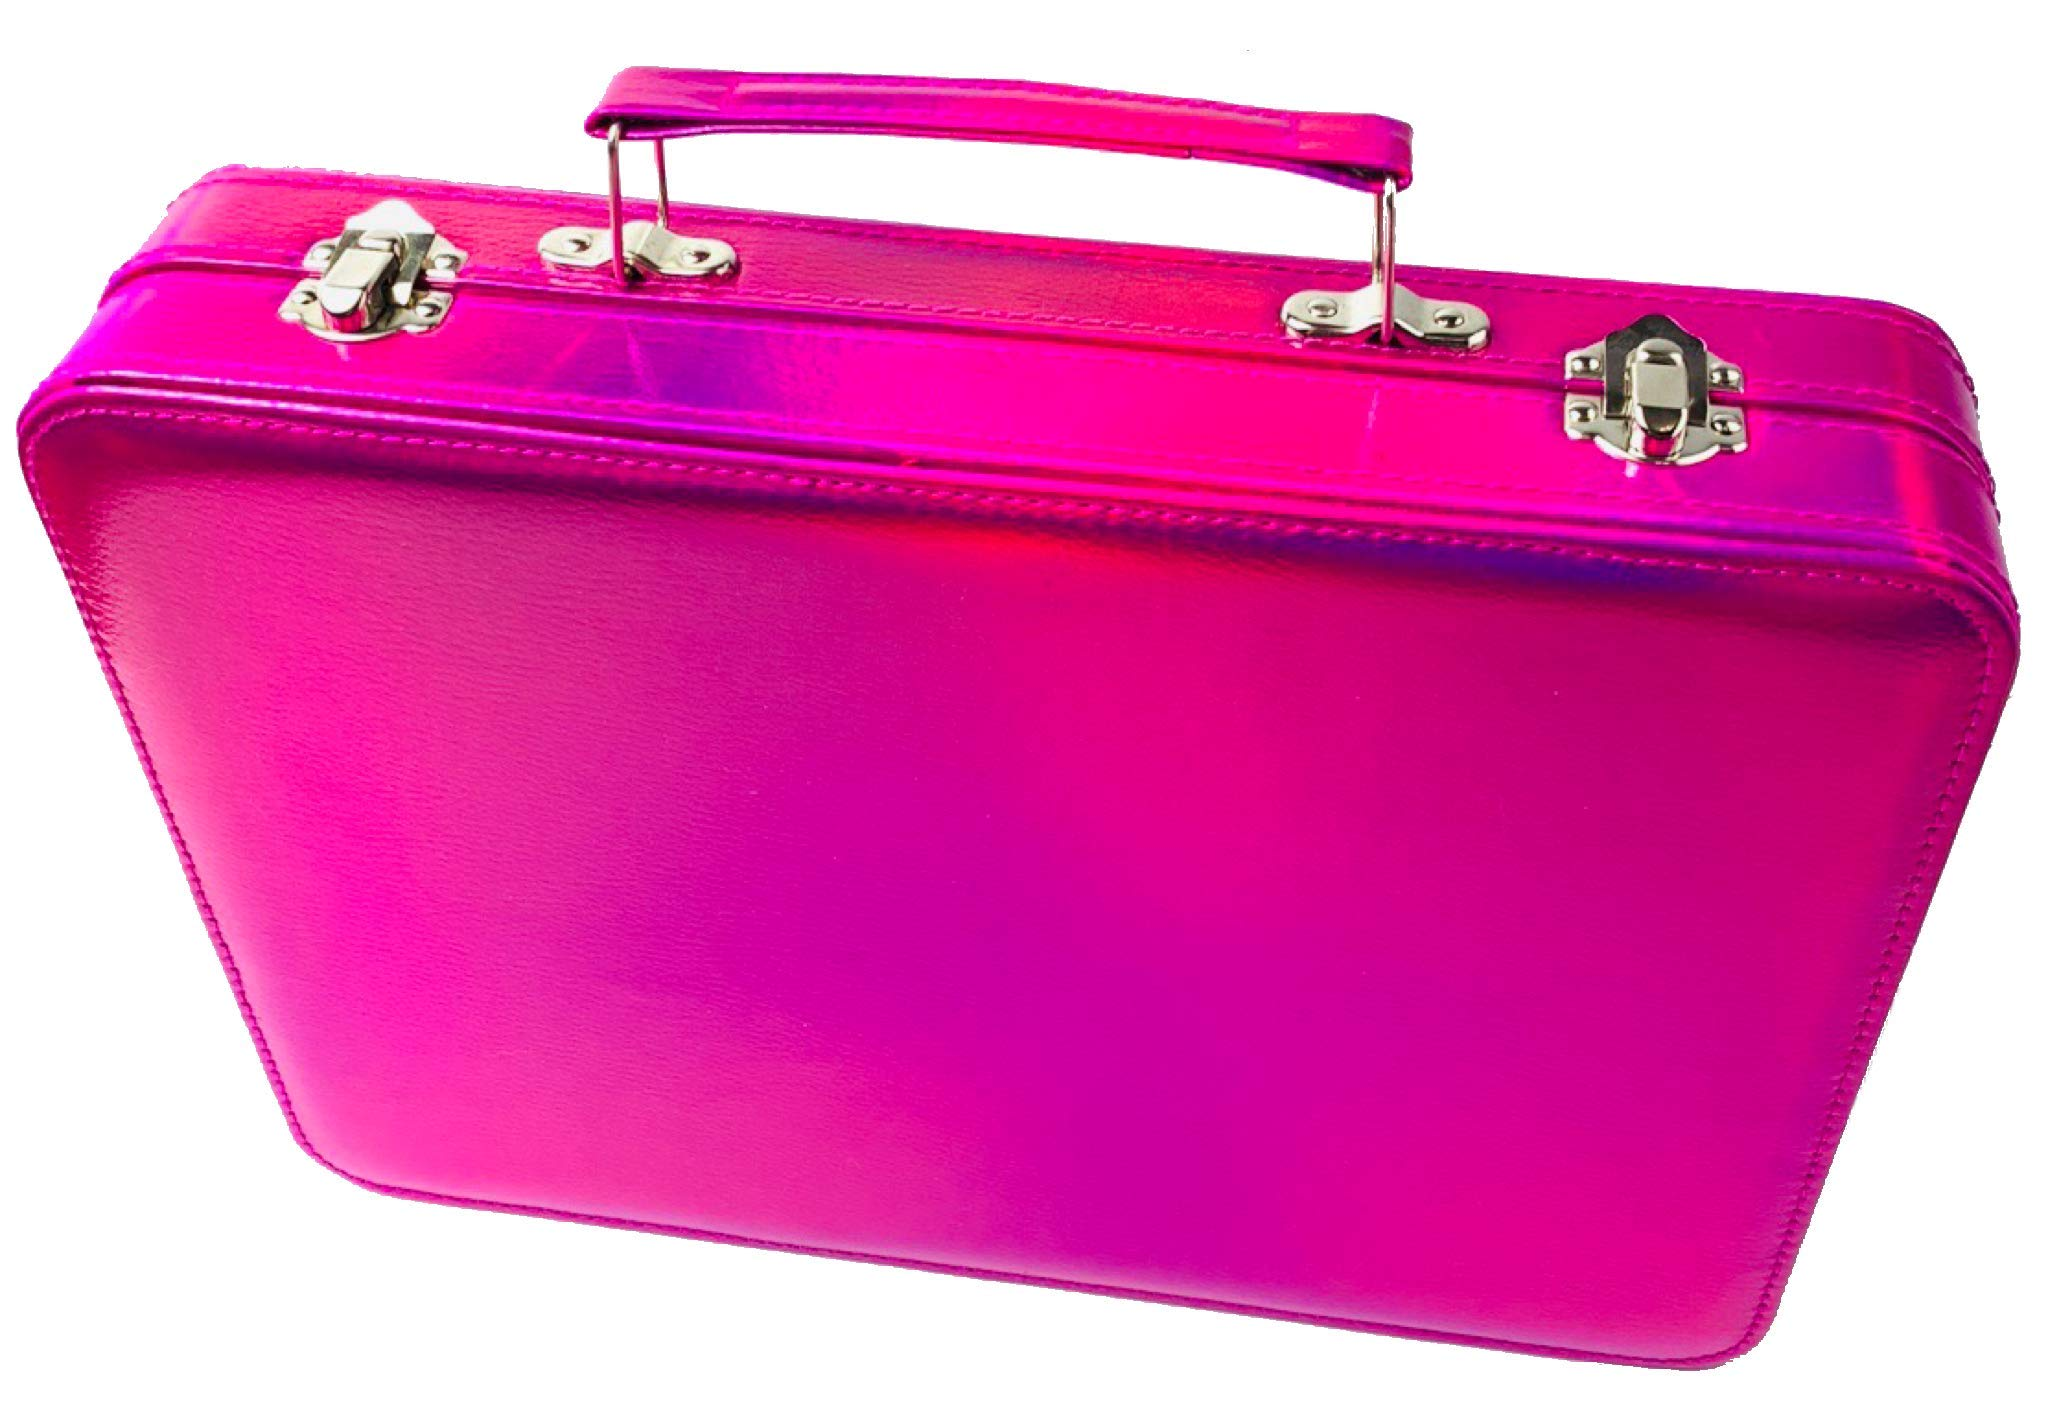 BR Carry All Trunk Professional Makeup Kit - Eyeshadow, Eyeliner, Lip Stick All In One Clear Case (RedCase) by BR (Image #4)